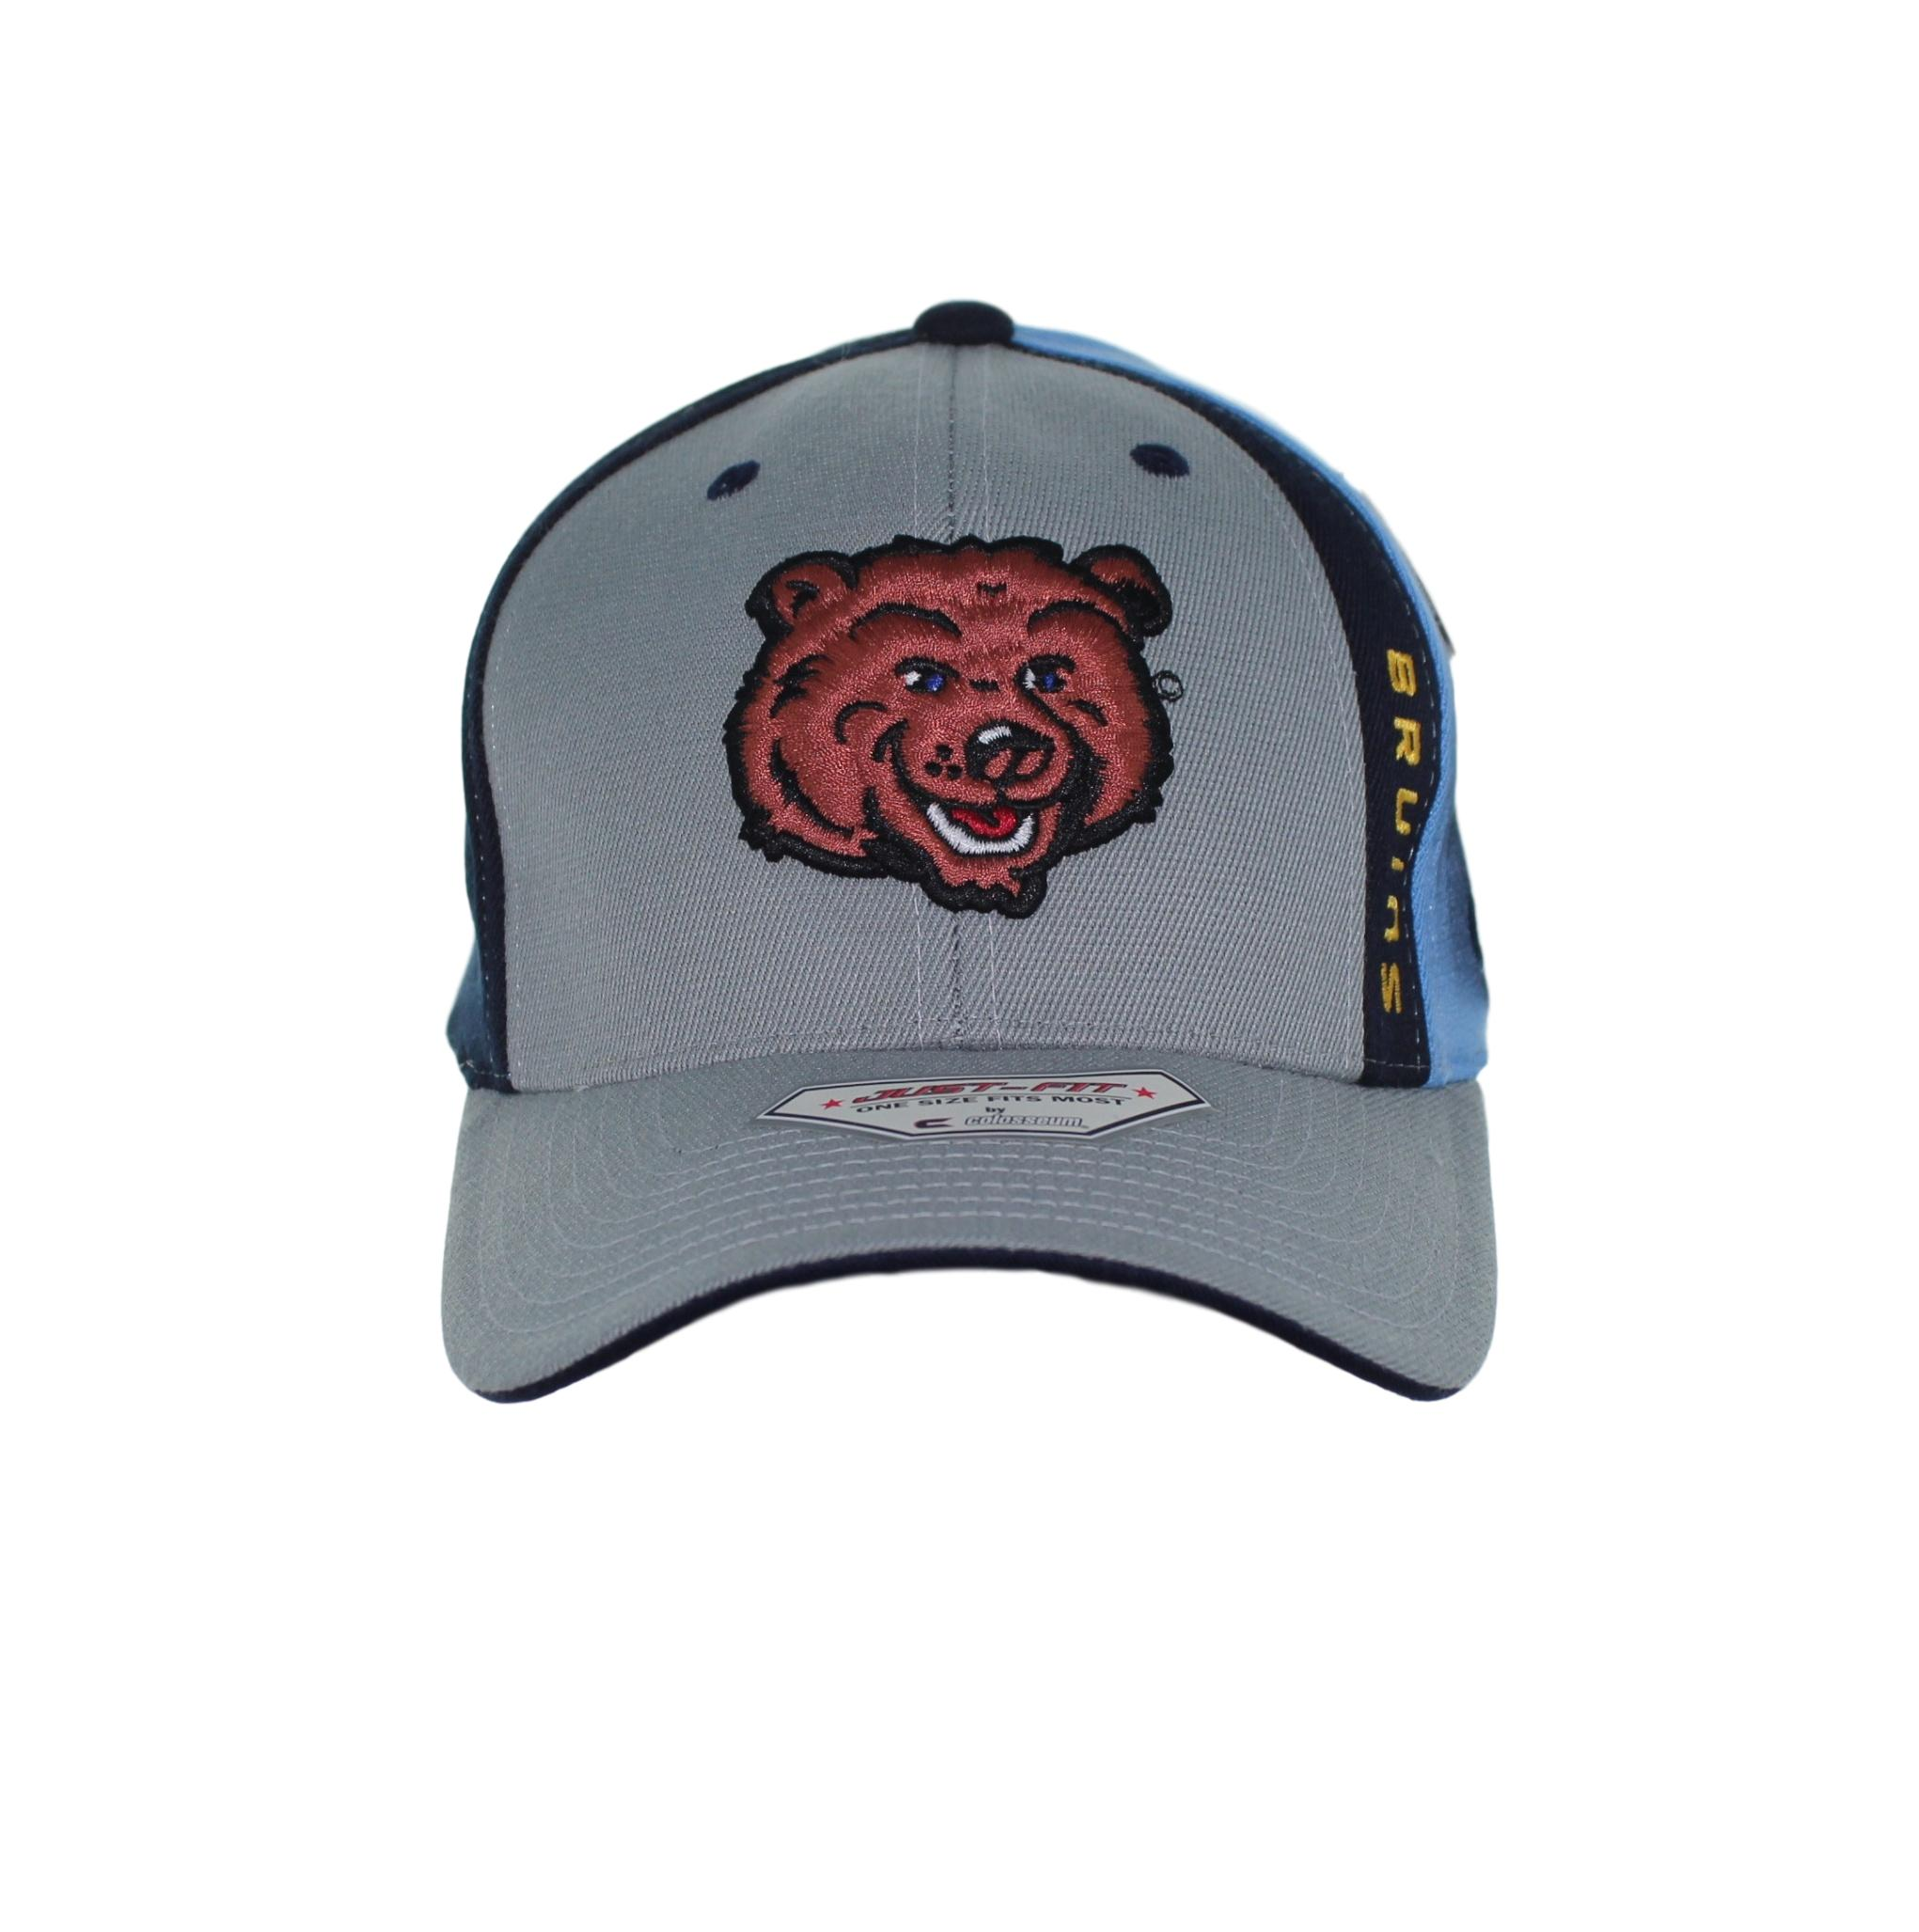 709a54a42 ... cheap ucla bruins brown bear logo on grey navy and blue flex fit hat  sel sportswear